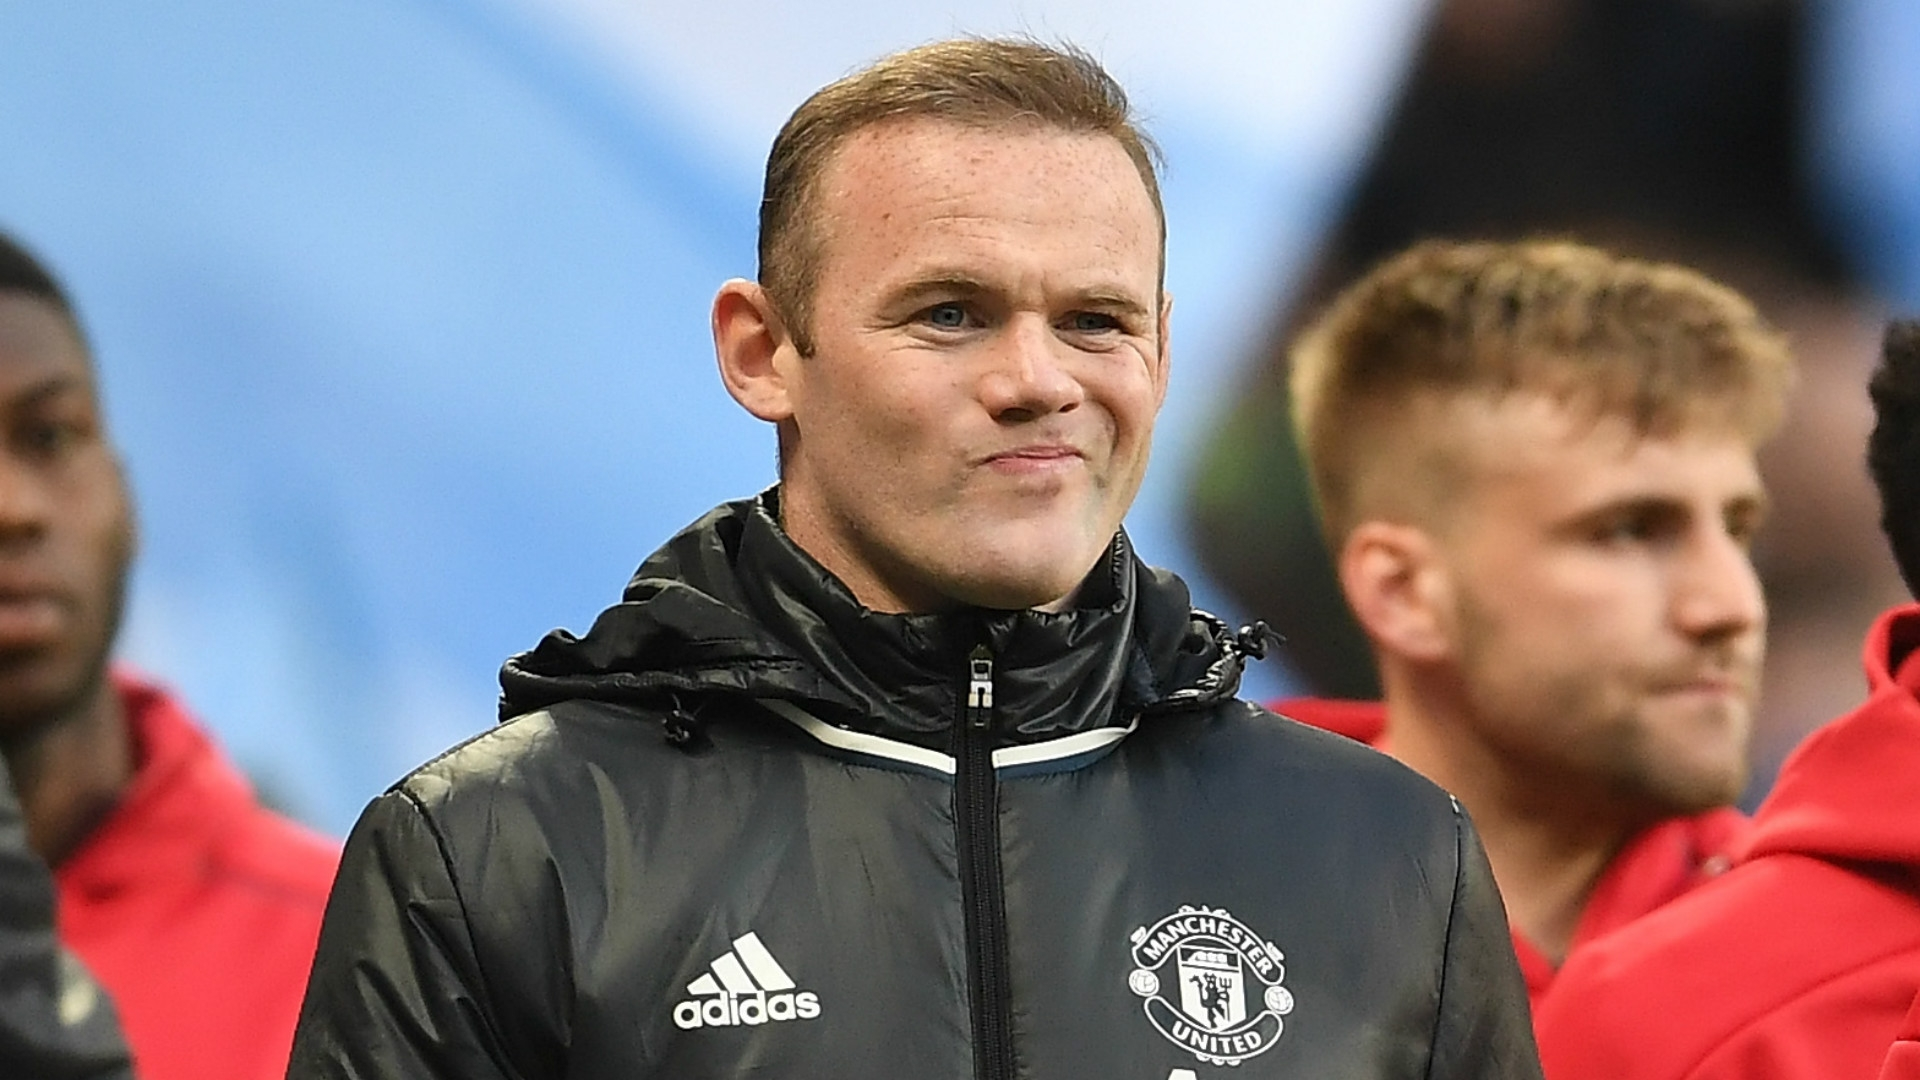 Wayne Rooney has not received a lot of playing time in Manchester United's team this season.